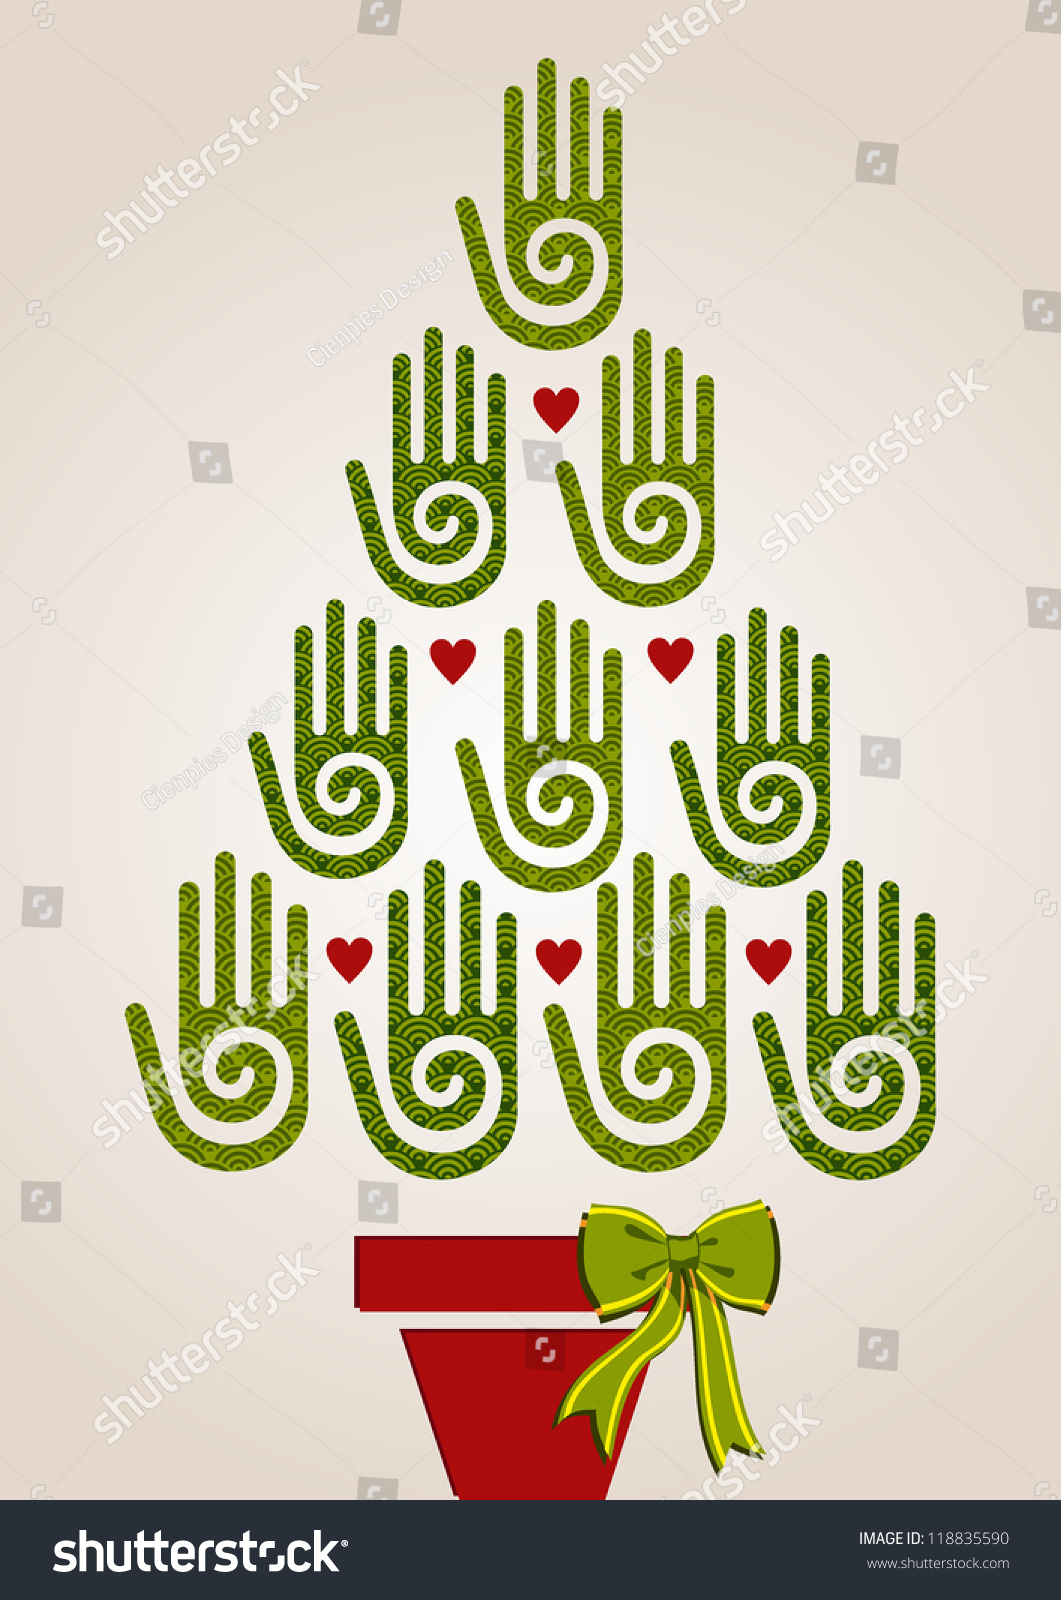 Eco friendly christmas tree hands greeting stock vector 118835590 eco friendly christmas tree hands greeting card vector illustration layered for easy manipulation and custom kristyandbryce Images